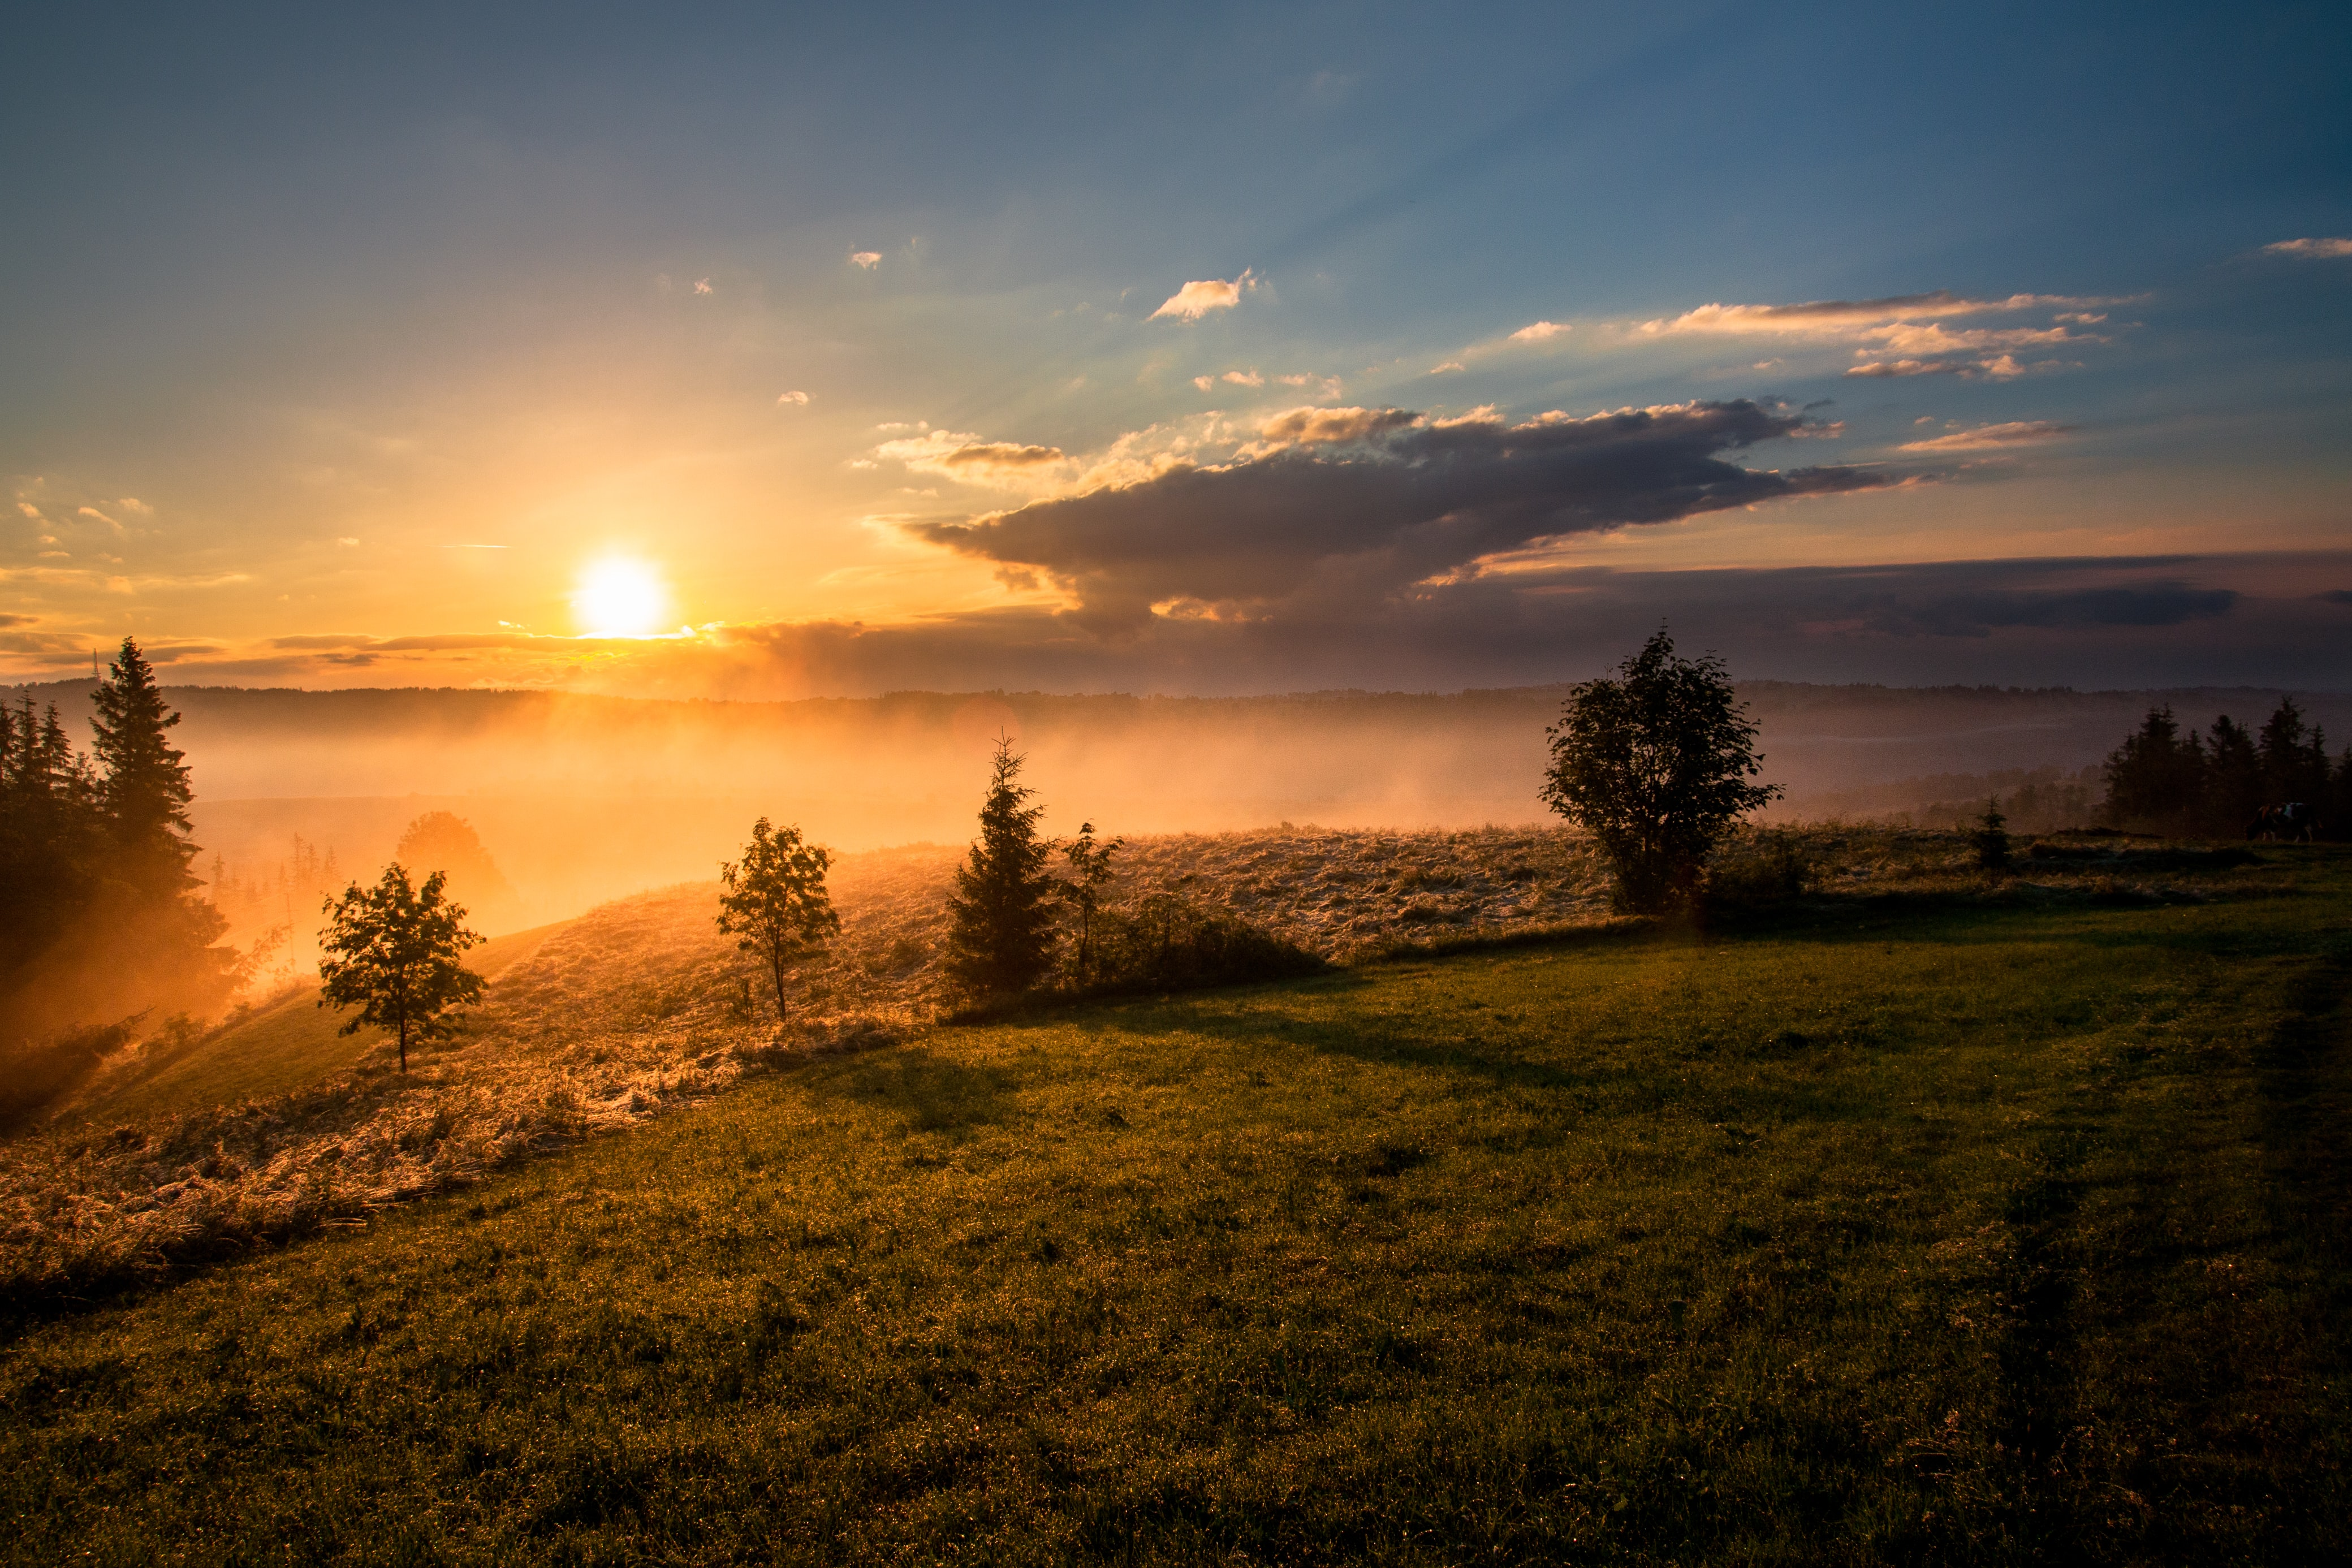 Sun peaks over the horizon as mist covers rolling hills